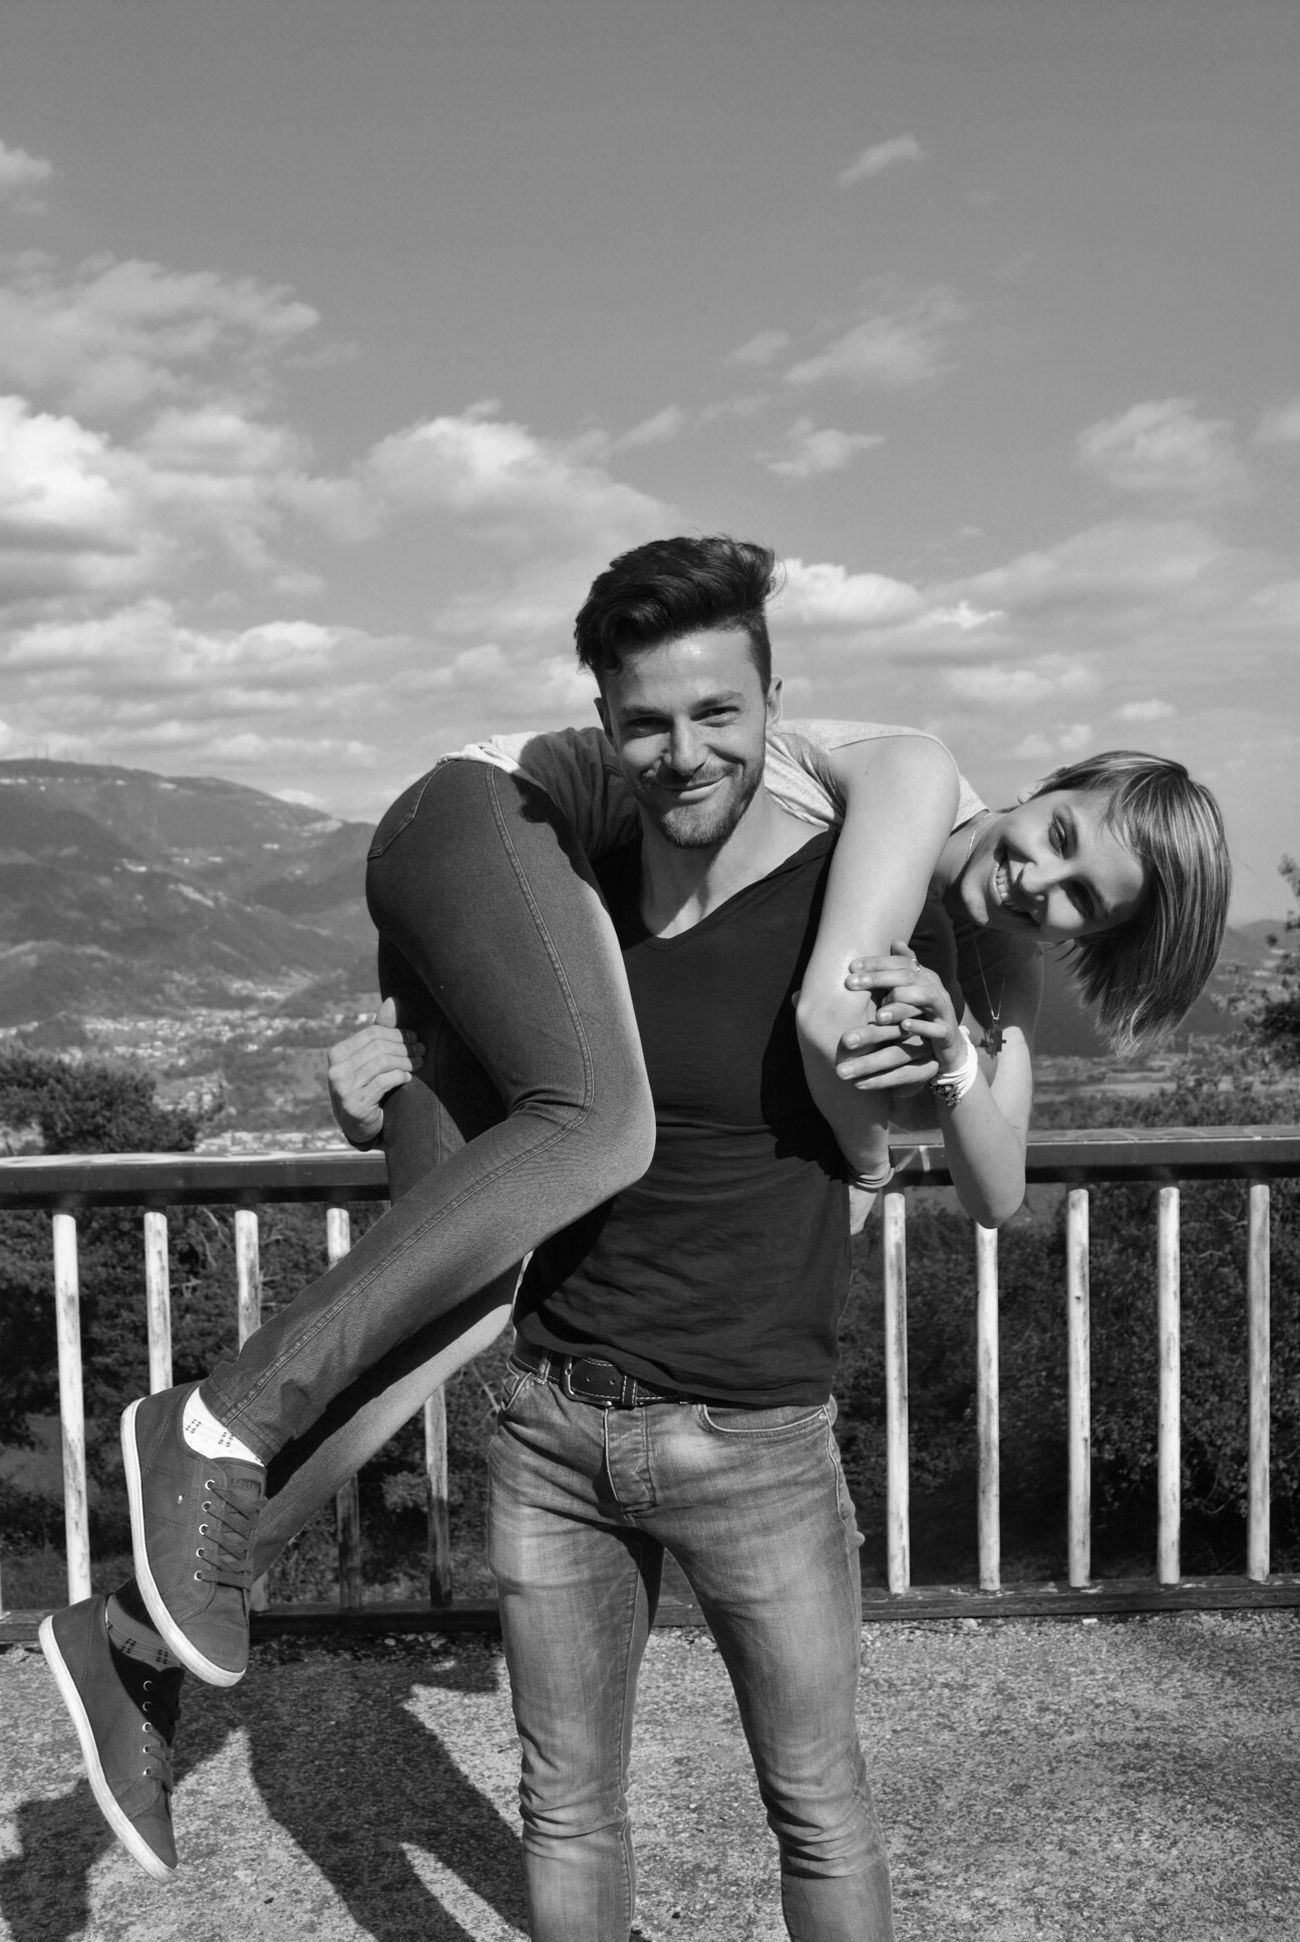 Consonno Love Mylove Blackandwhite Smile Yoursmileistheperfection Tiamo Persemprenoi Picoftheday Boyfriend